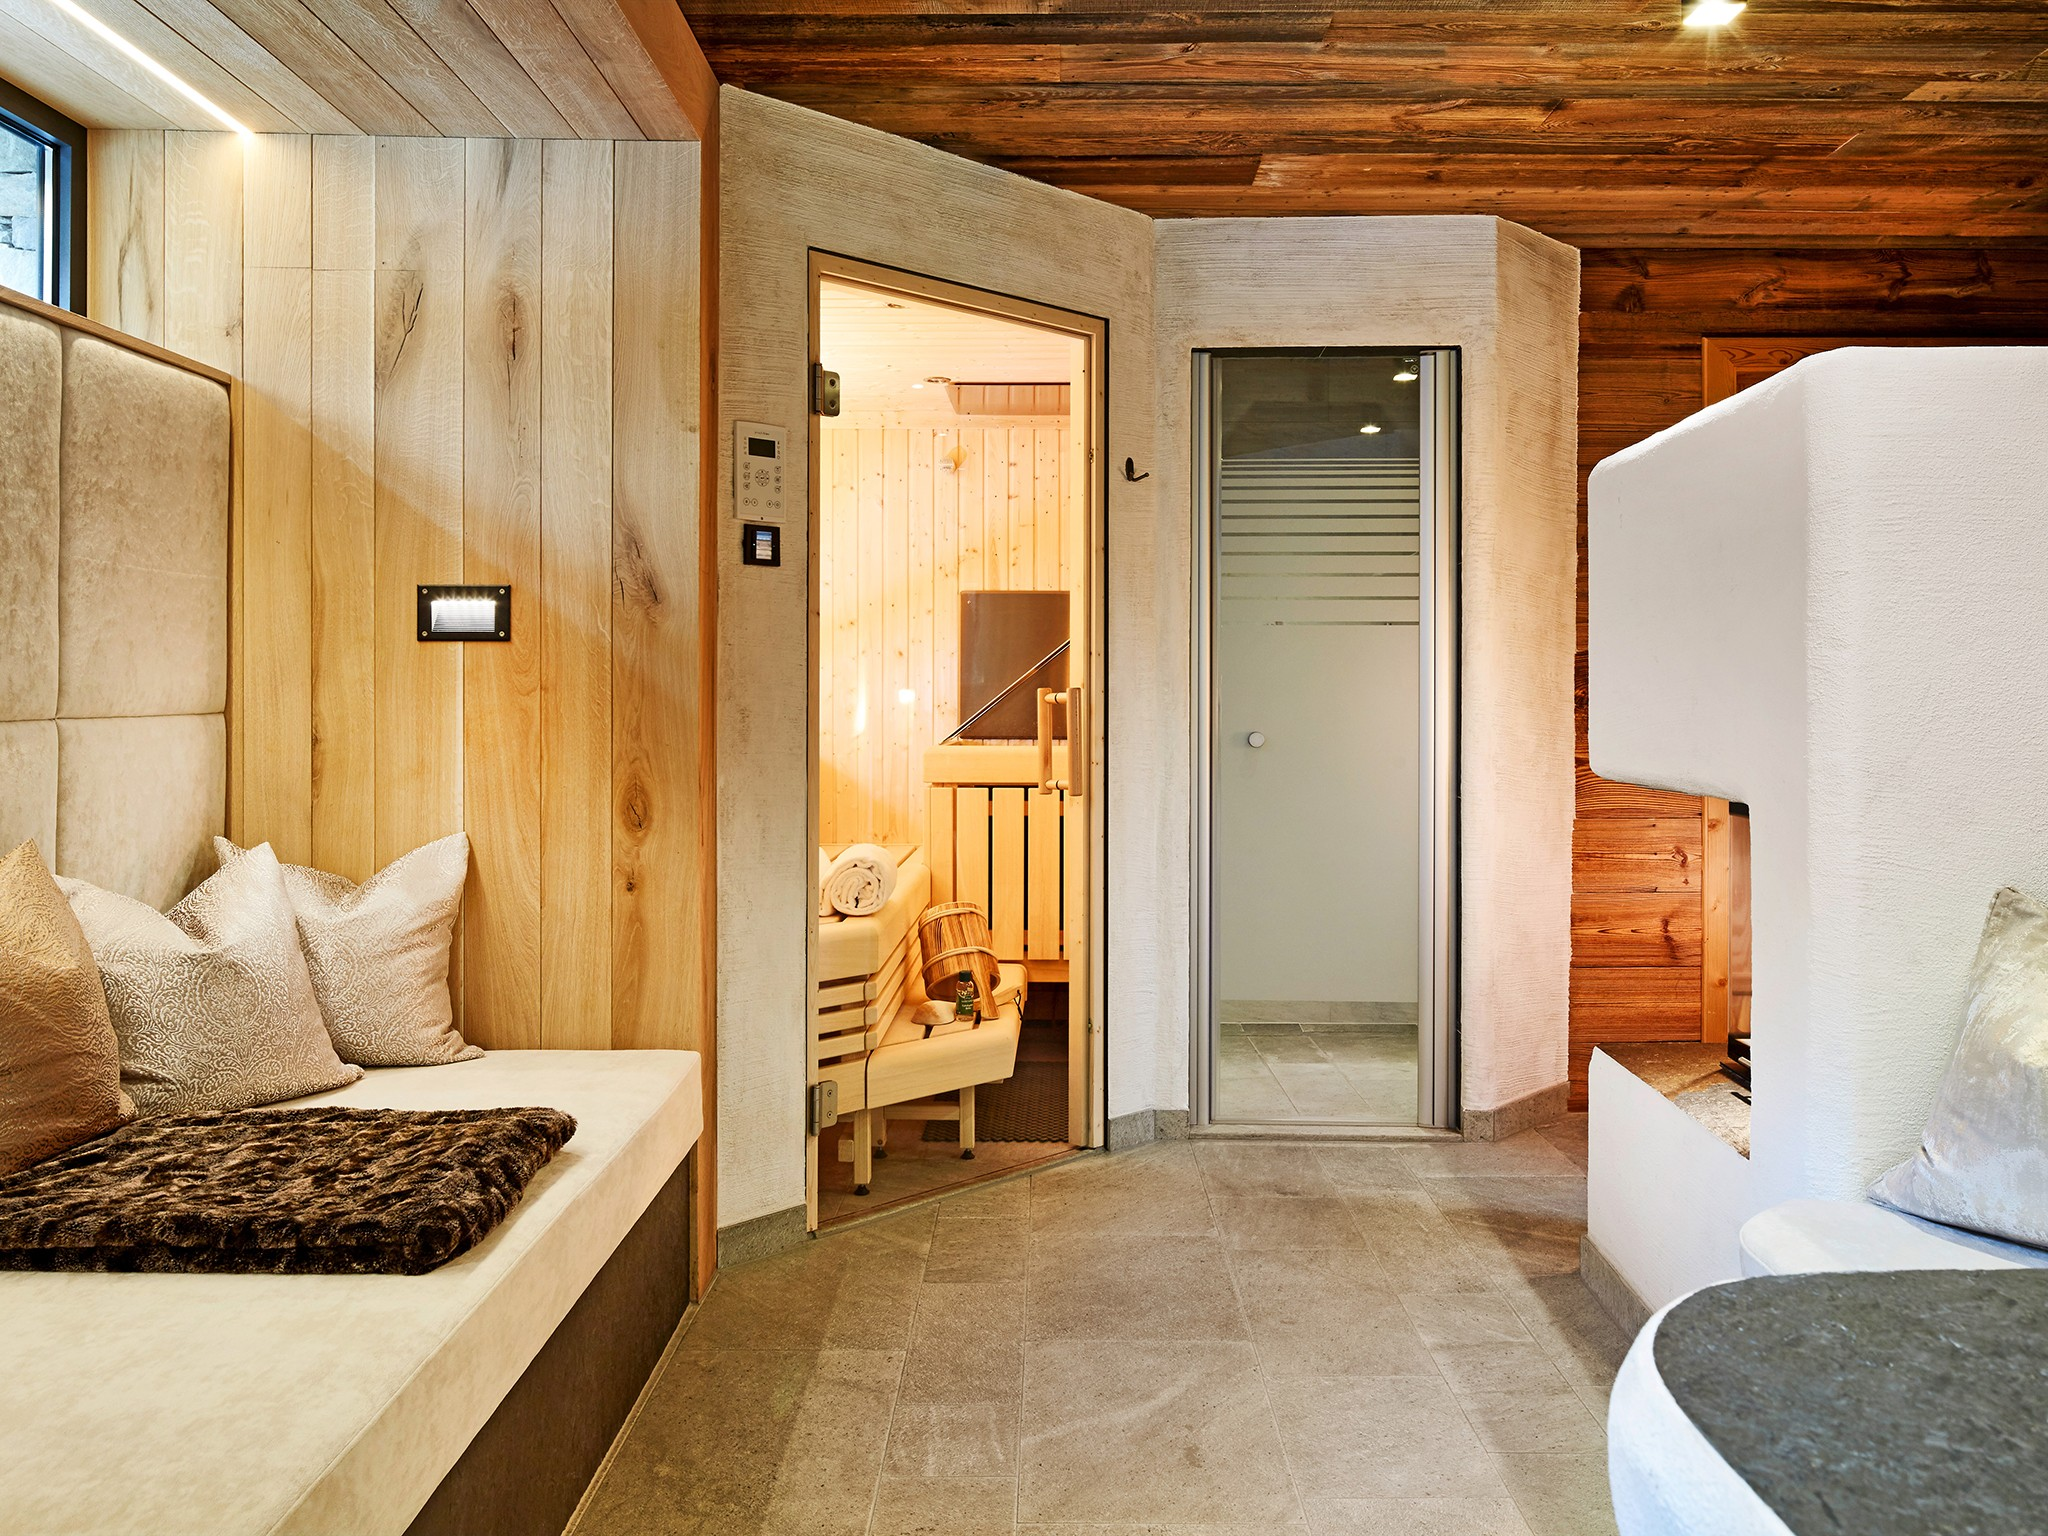 Alpin-Lodge-Flachau-#1-Wellness-Sauna-B